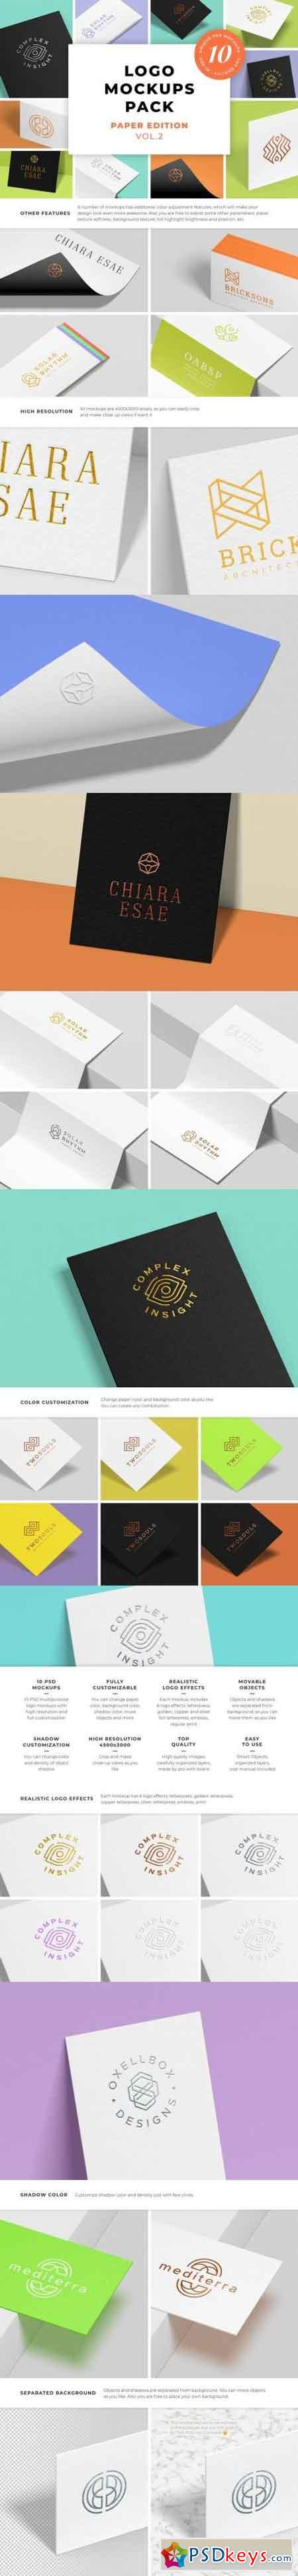 Logo Mockups Pack Paper Edition Vol.2